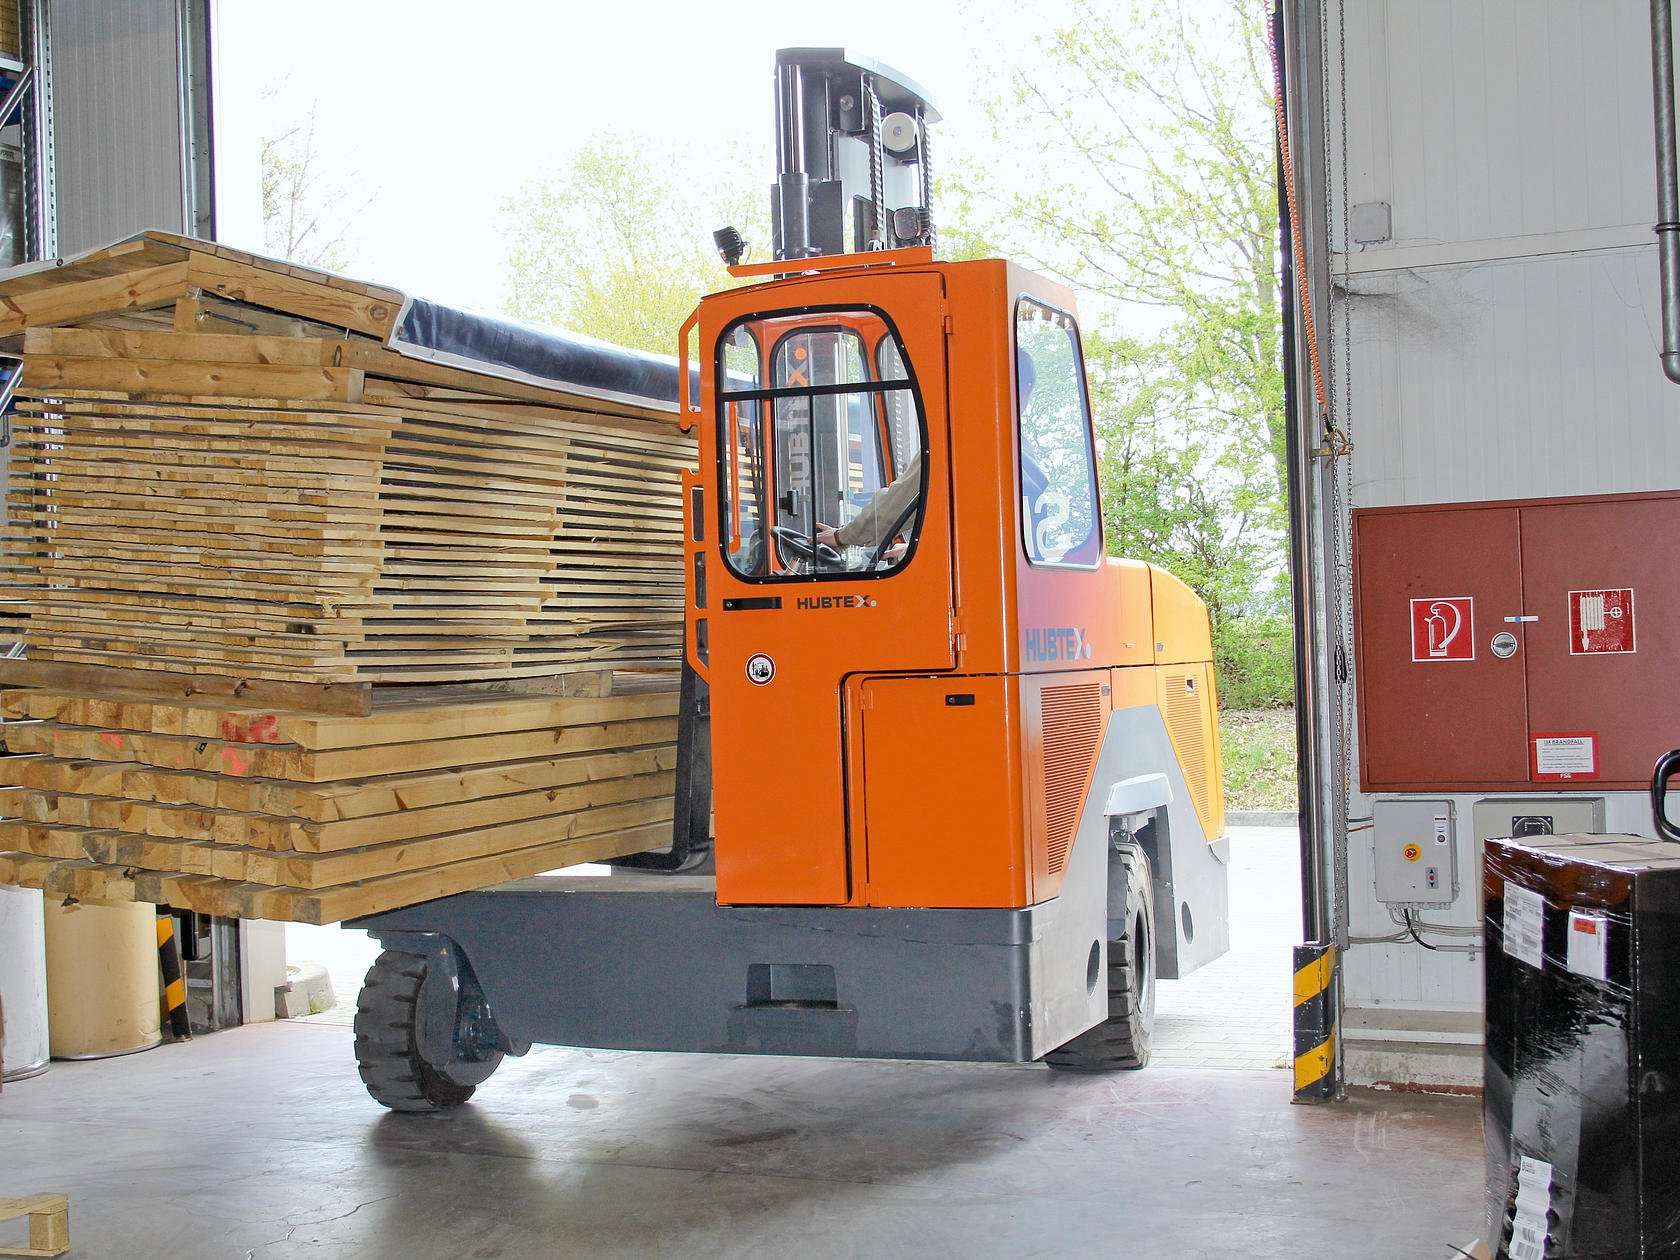 Fourway sideloader carrying timber pack